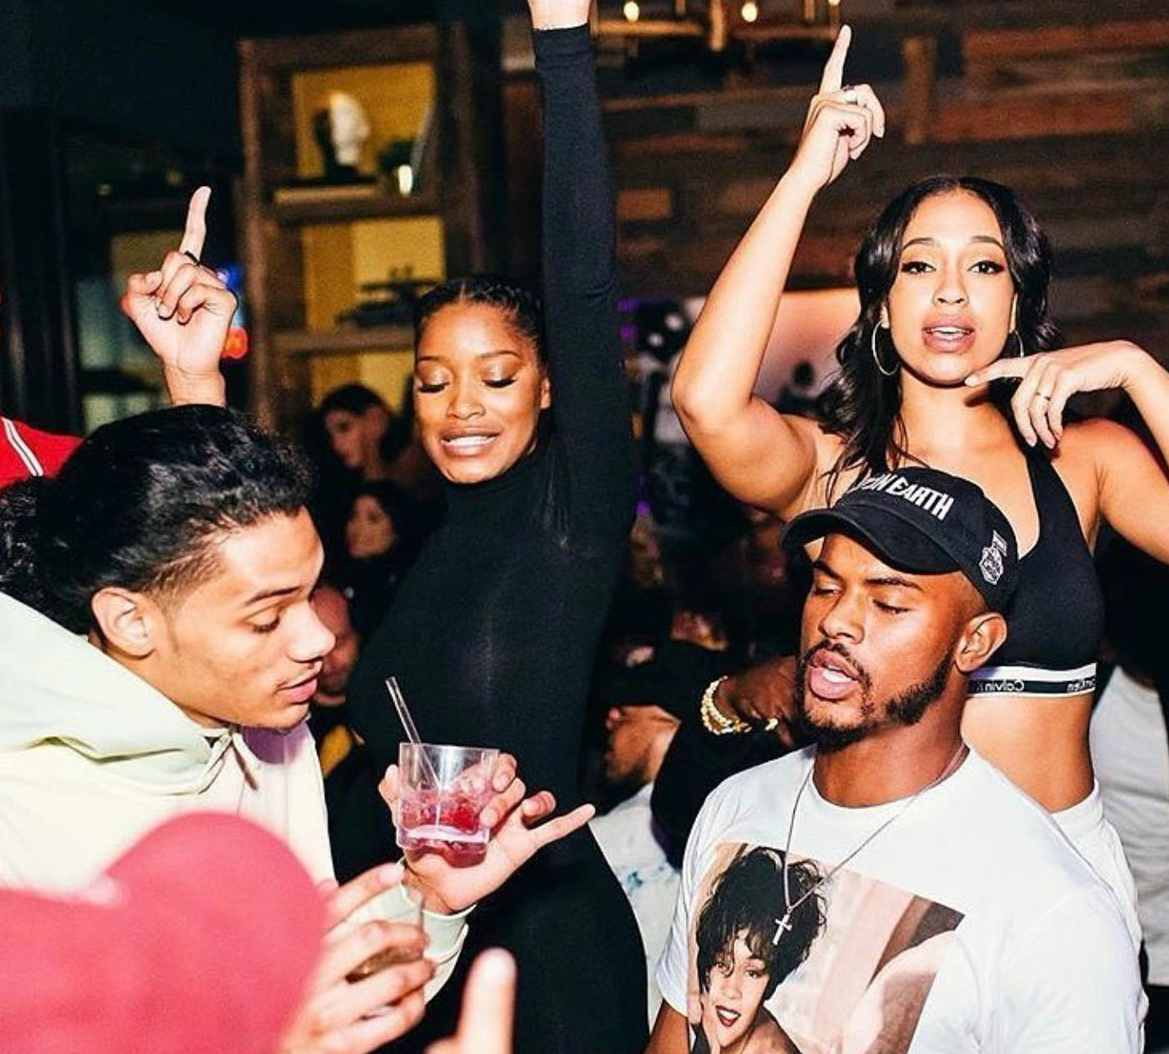 Keke Palmer partying with her friends and ex-boyfriend